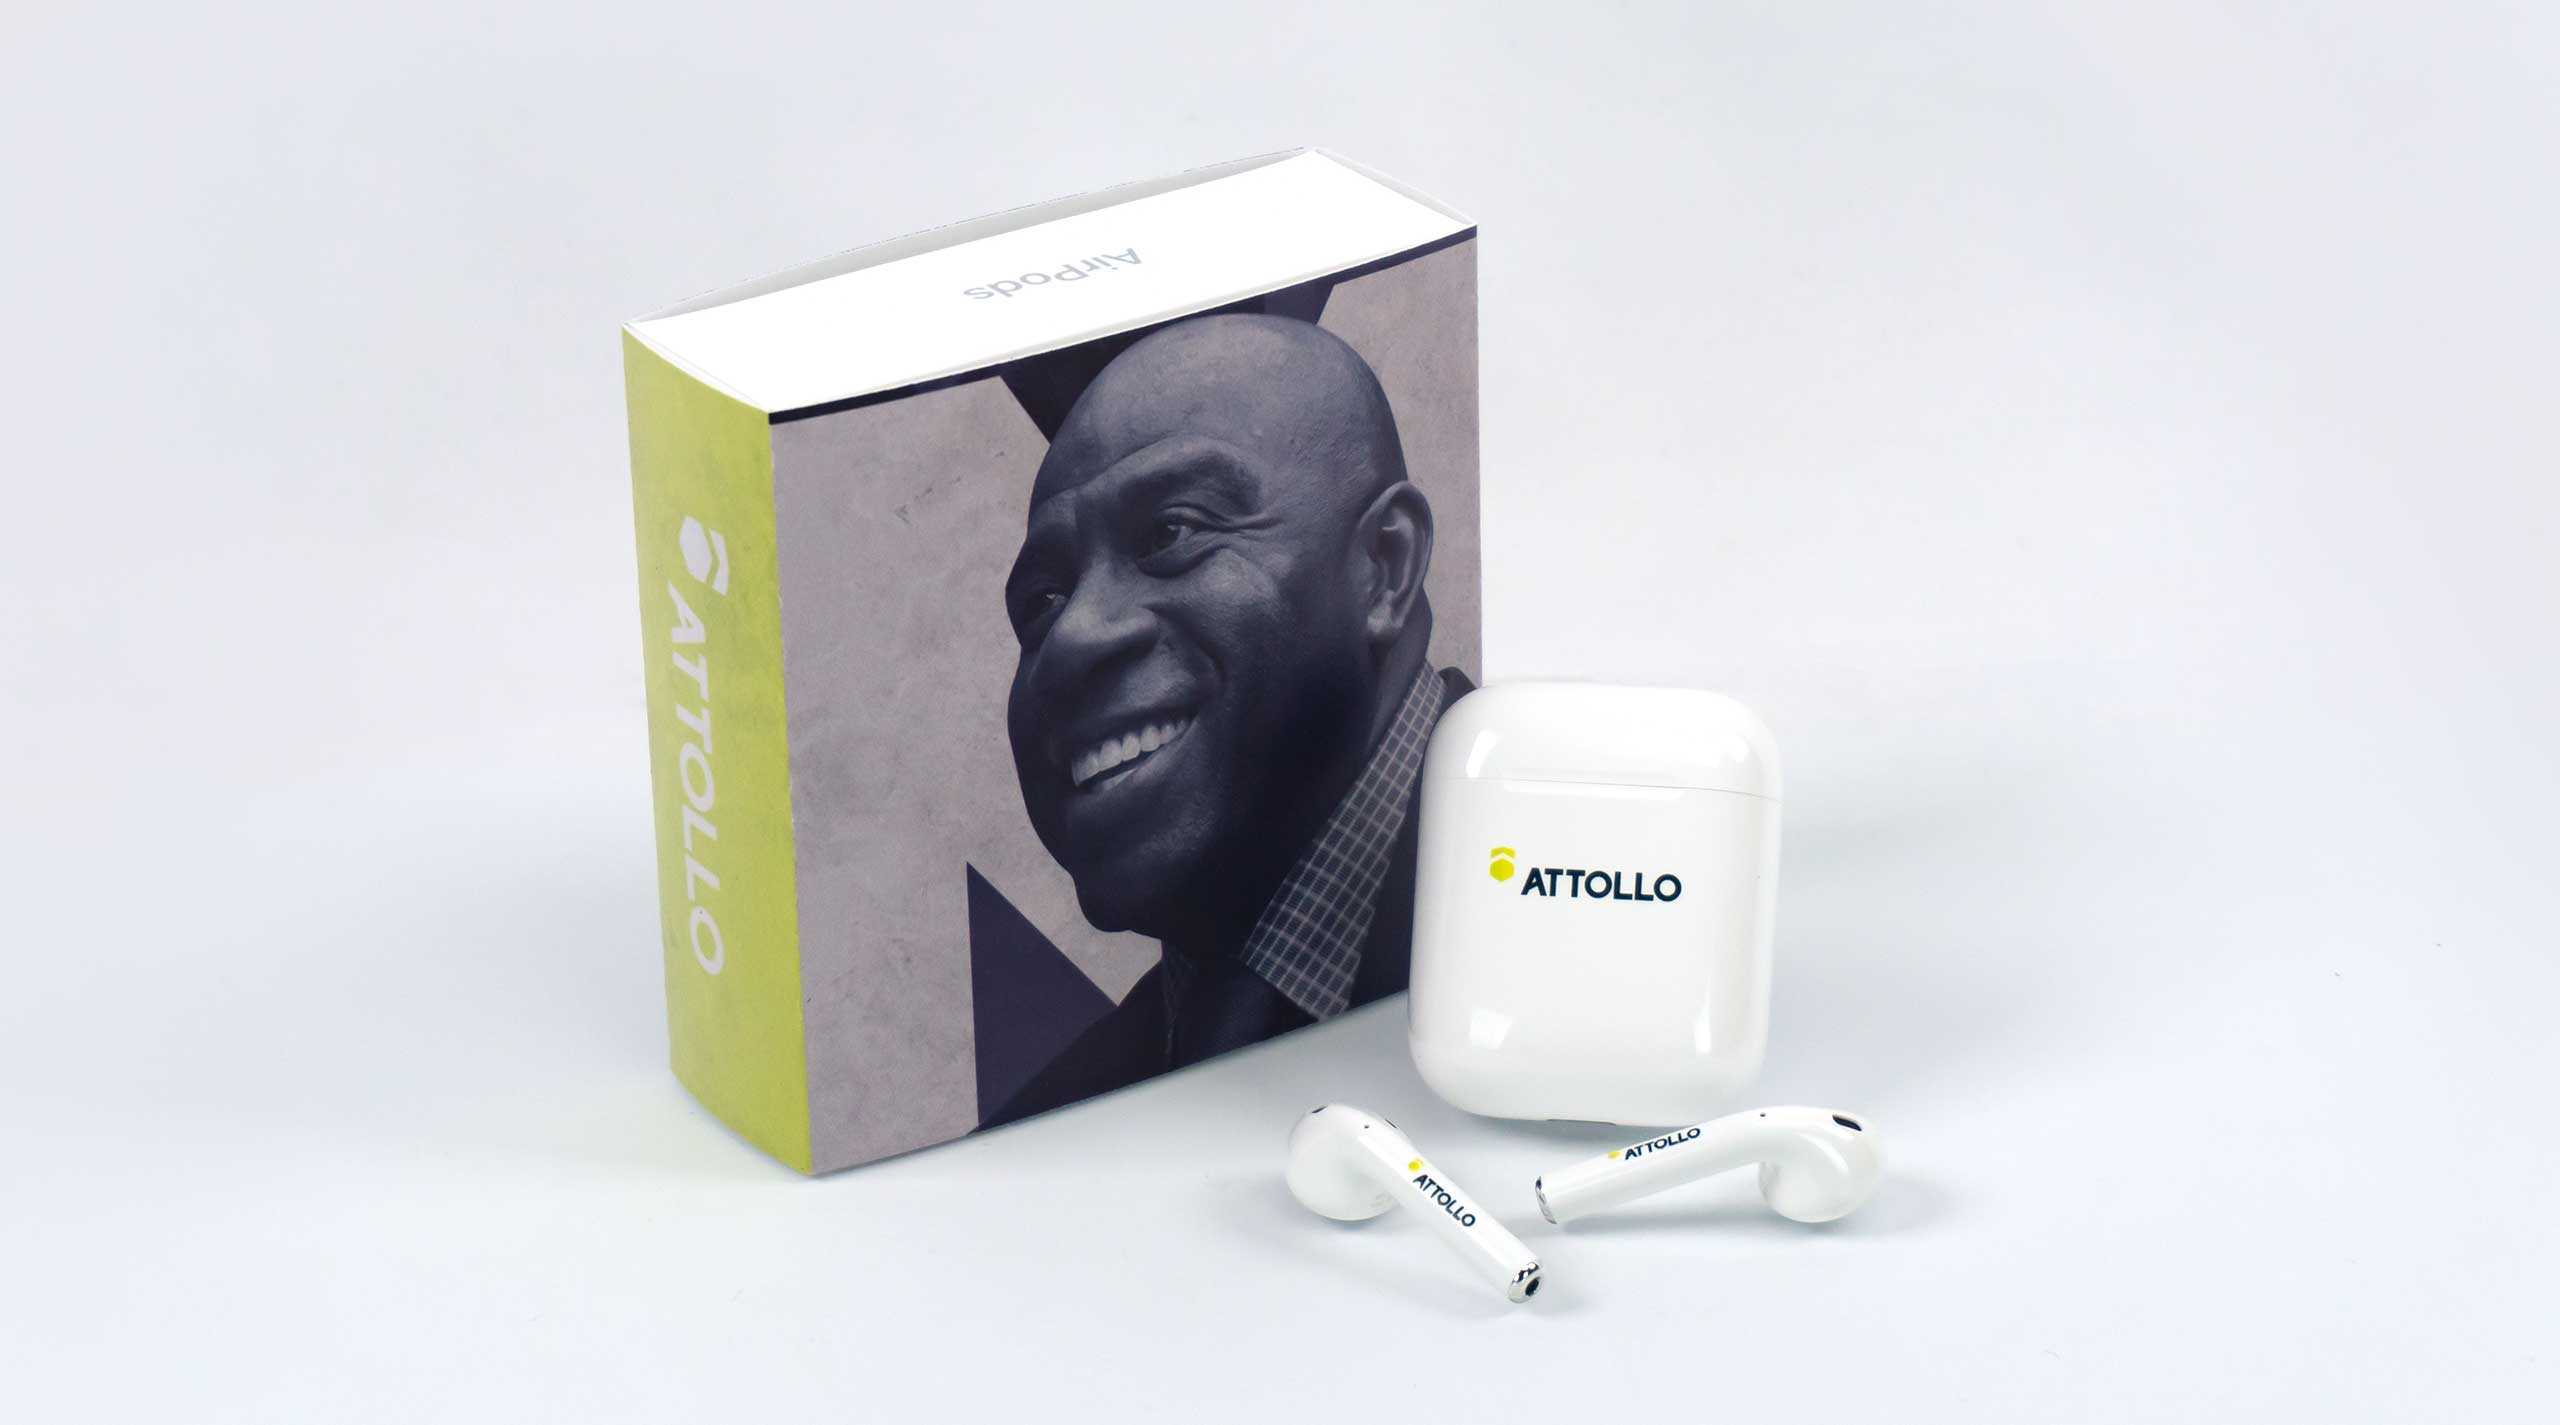 Custom branded Apple AirPods are given to event sponsors and donors of Attollo's annual fundraiser.